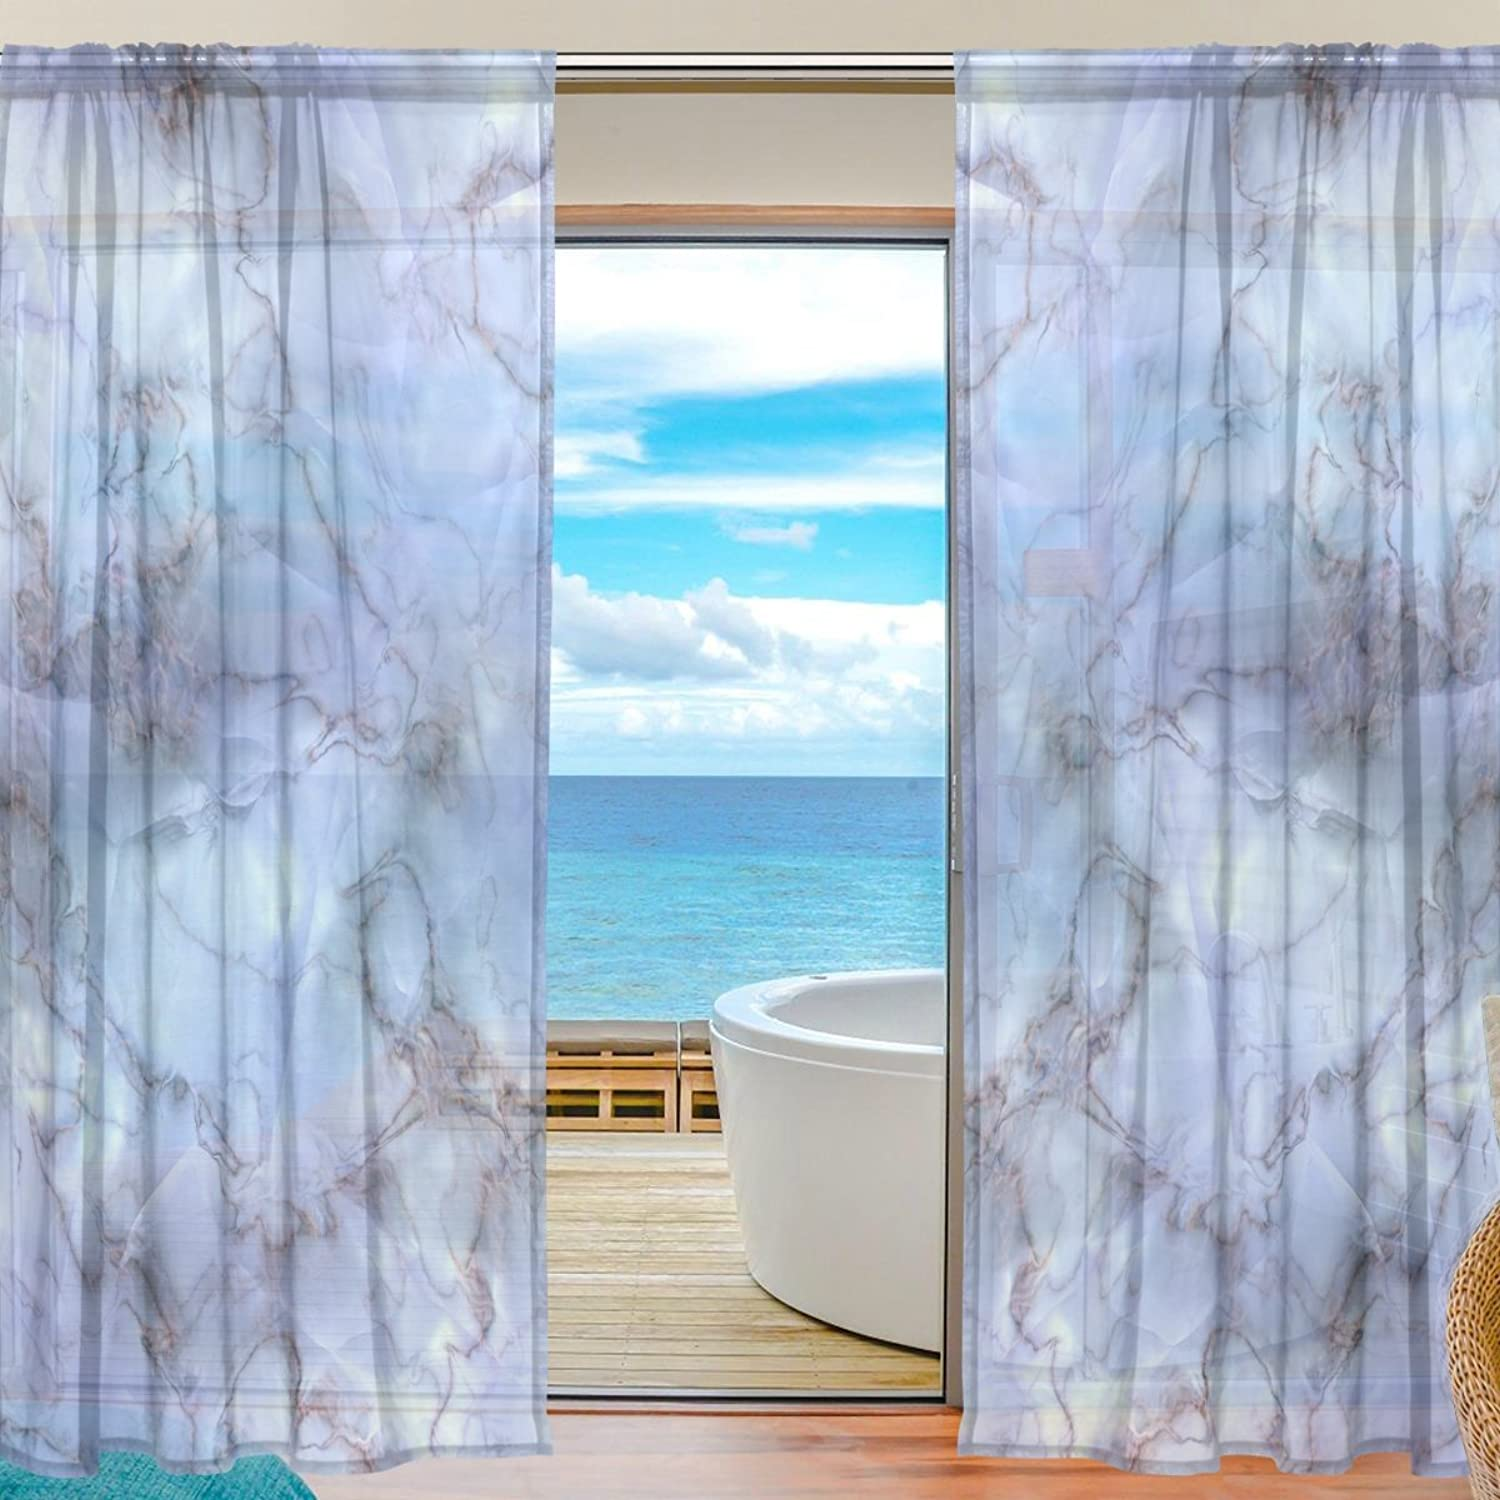 Vantaso Sheer Curtains 78 inch Long Marble Pattern for Kids Girls Bedroom Living Room Window Decorative 2 Panels